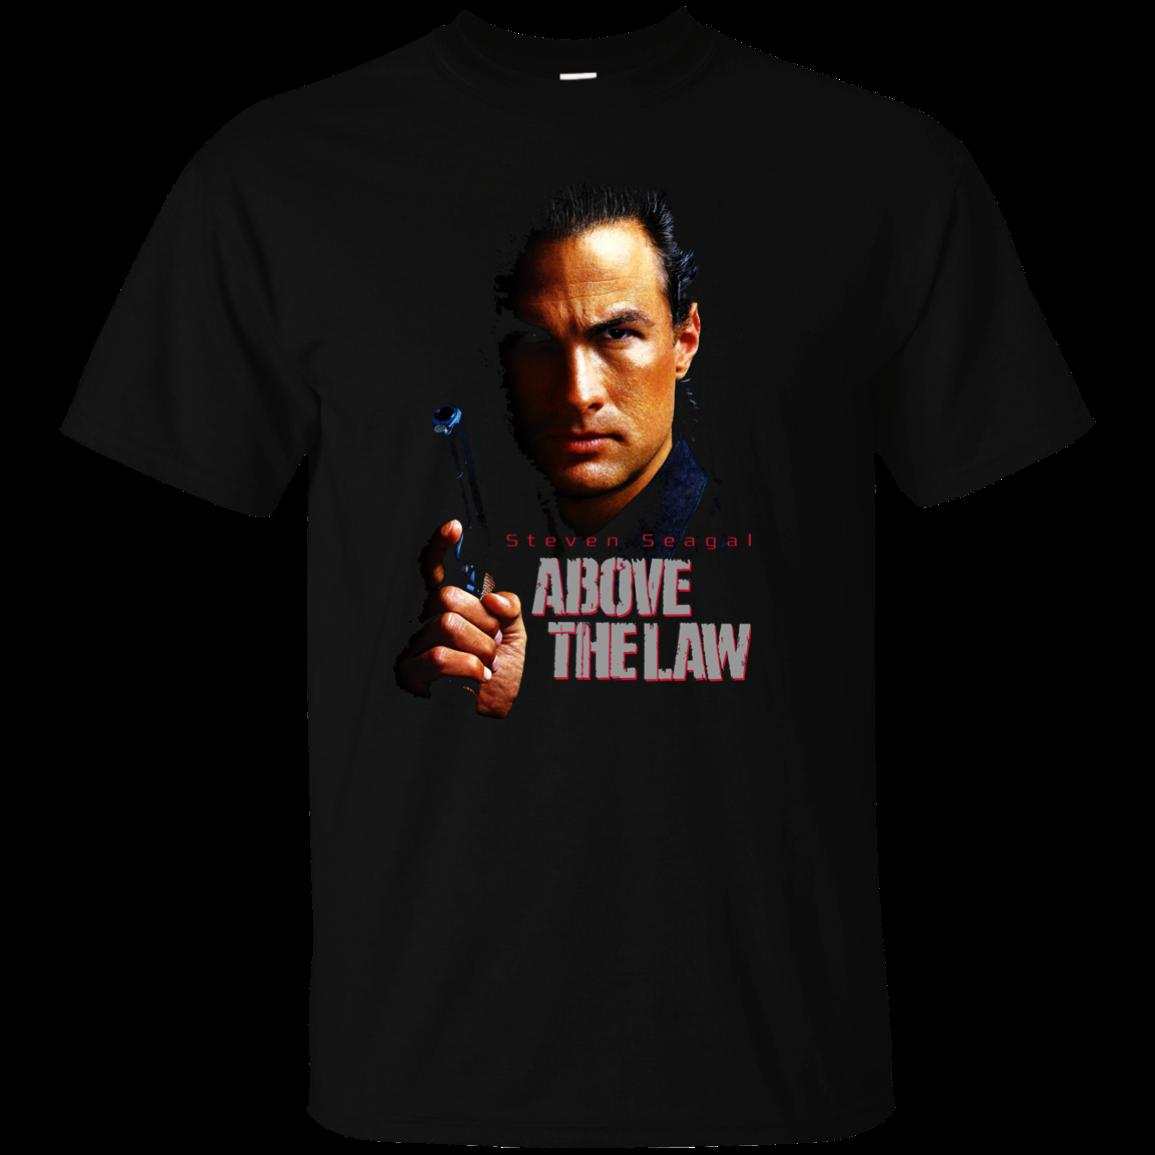 Above the Law, Steven Seagal, Action, Movie, Marked for Death, Under Siege,  Cool Casual pride t shirt men Unisex